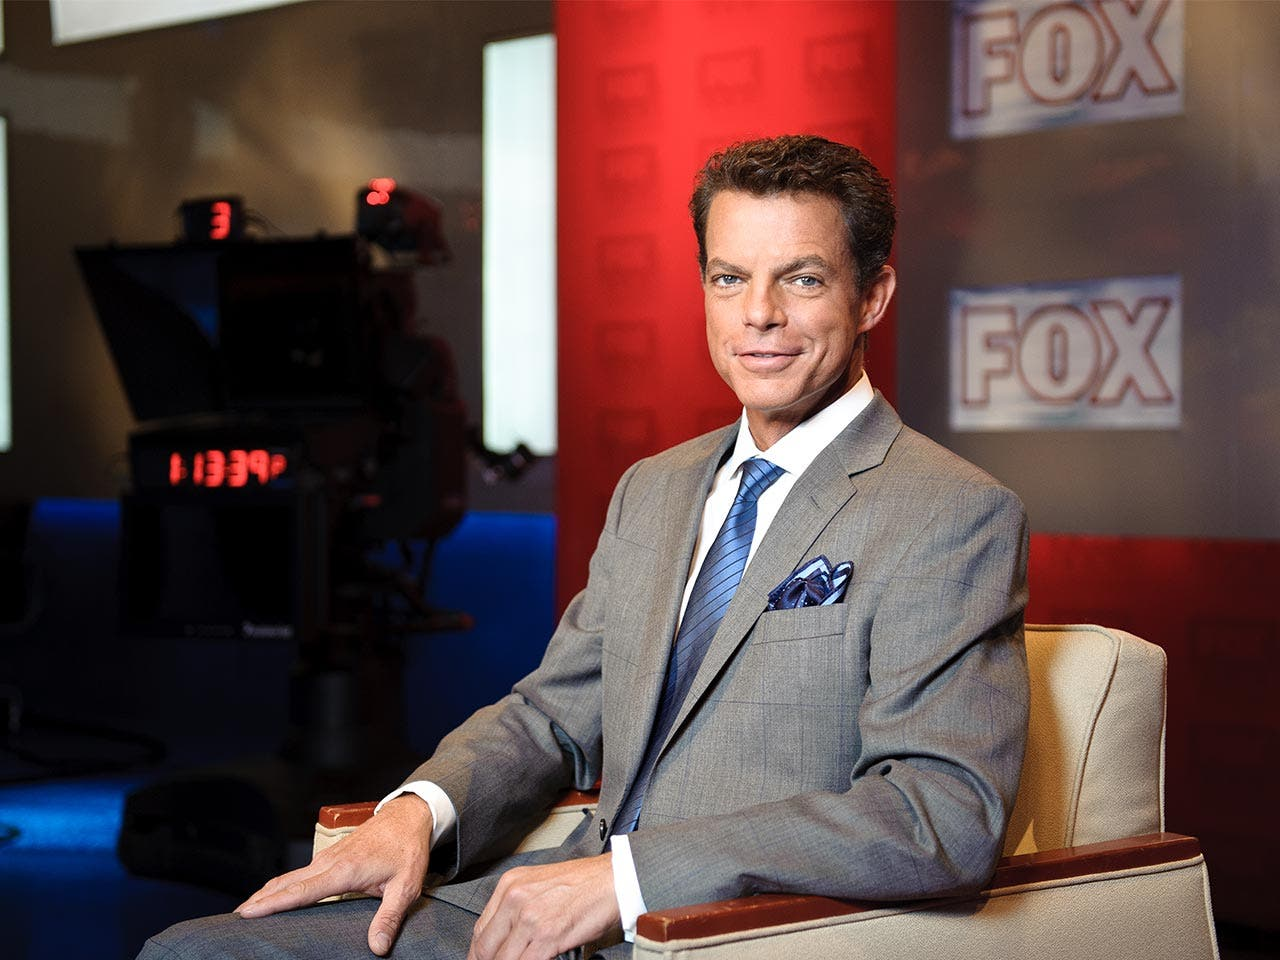 Shepard Smith | The Washington Post/Getty Images